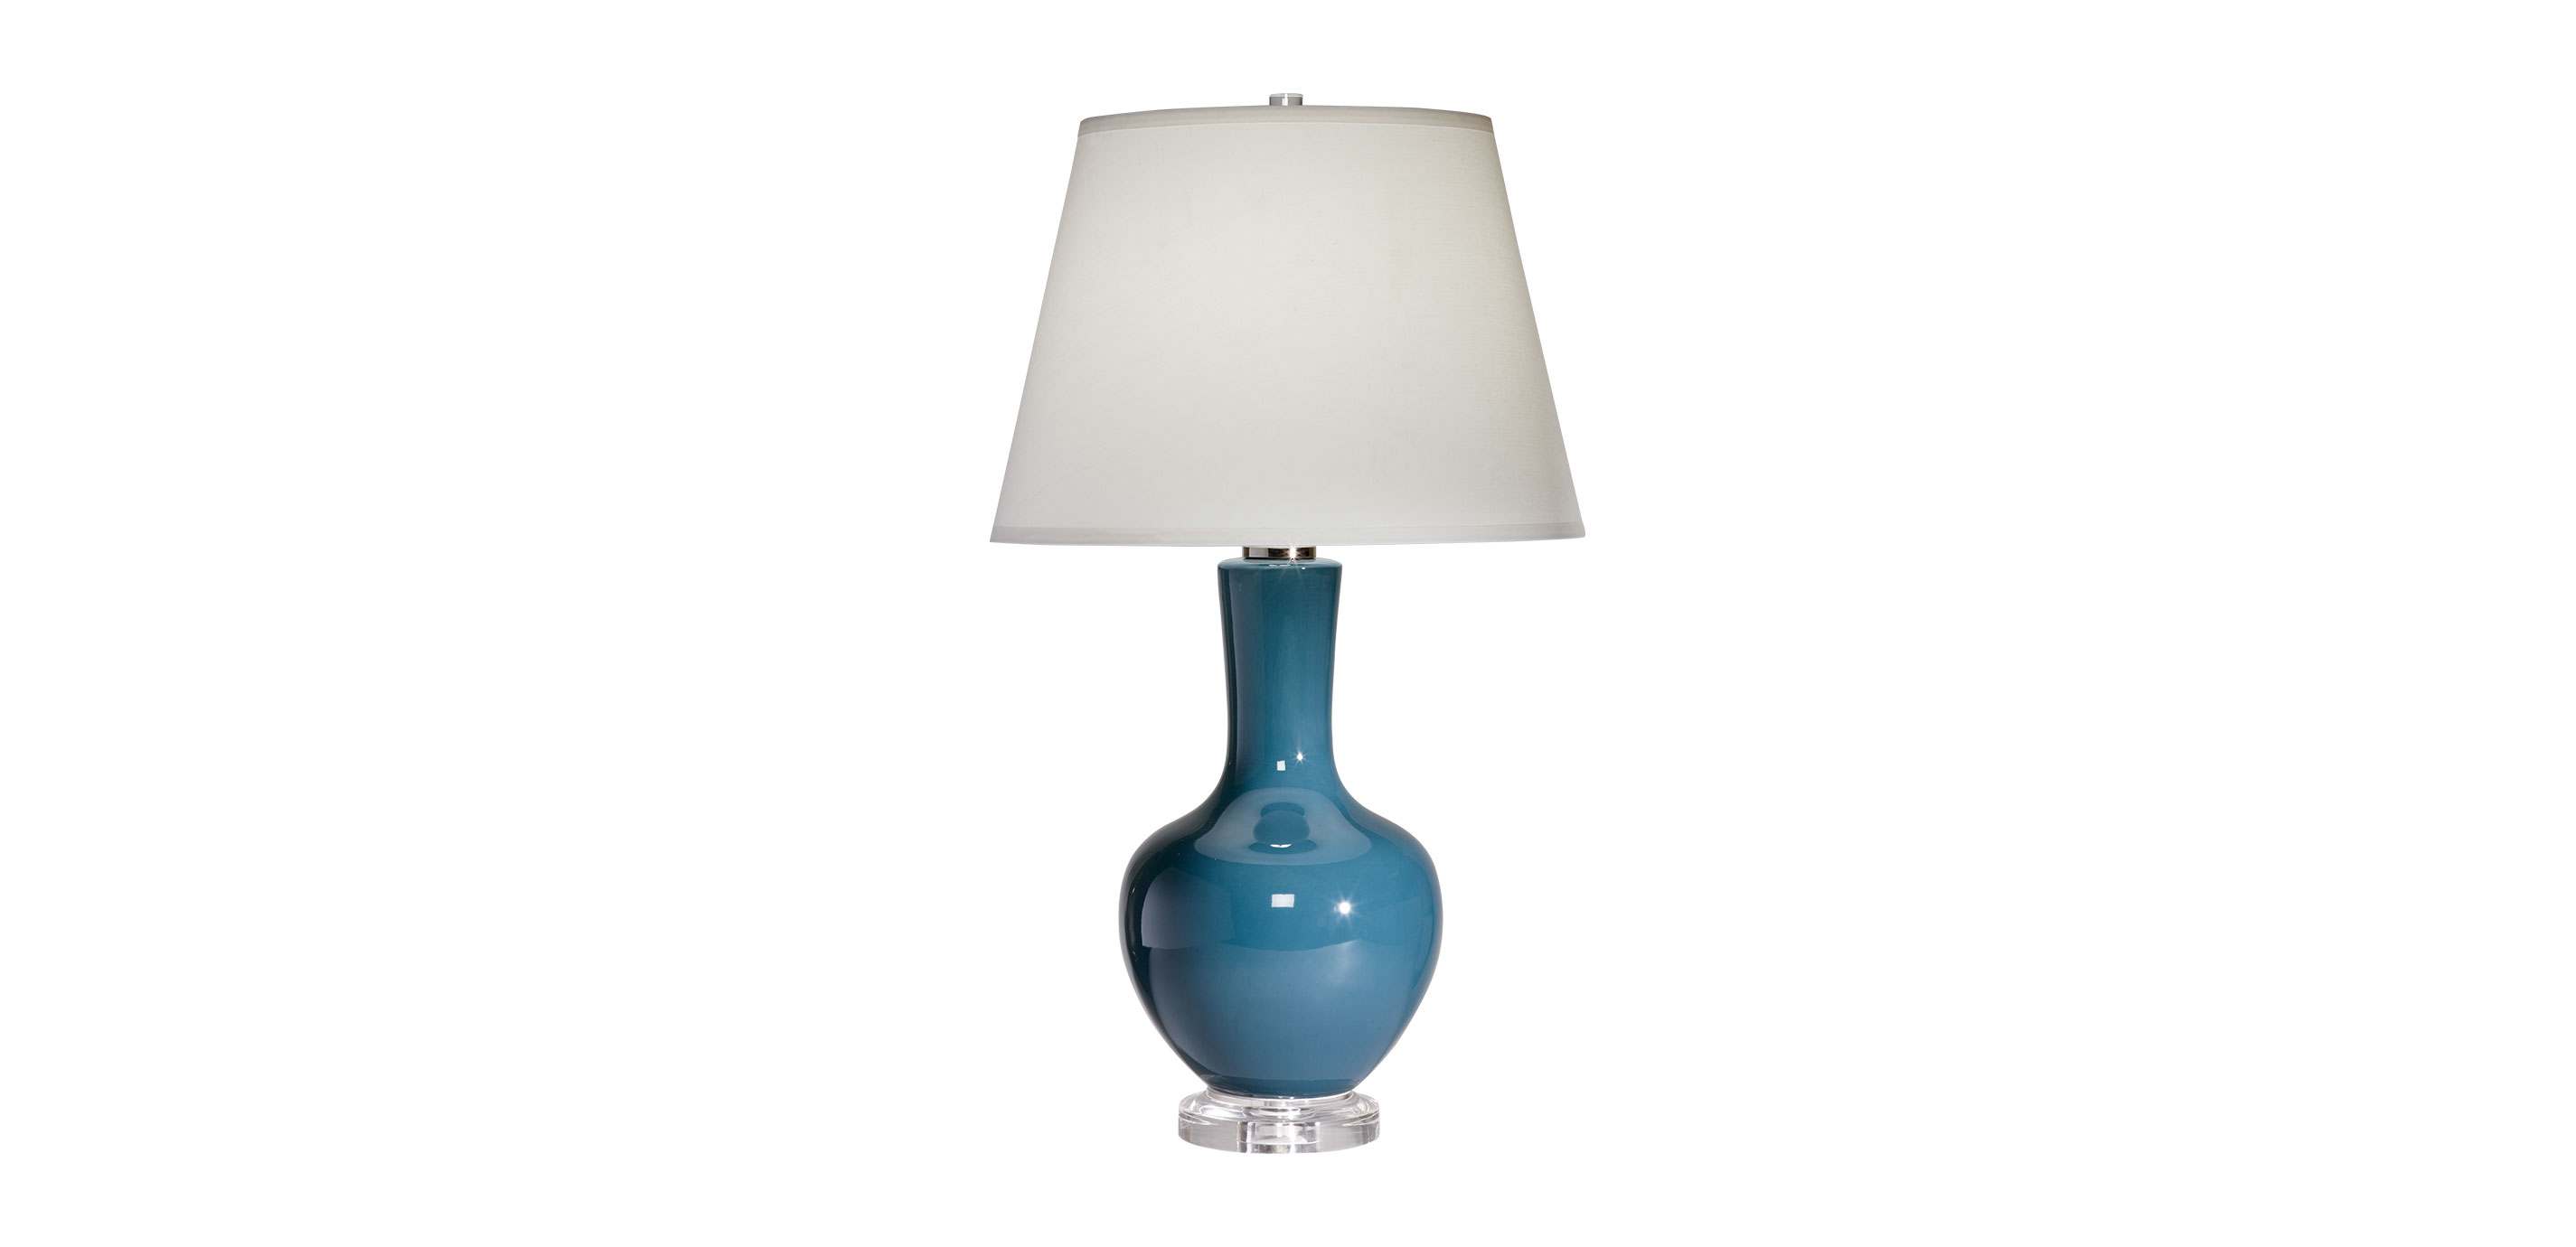 Lia table lamp table lamps ethan allen for Images of table lamps